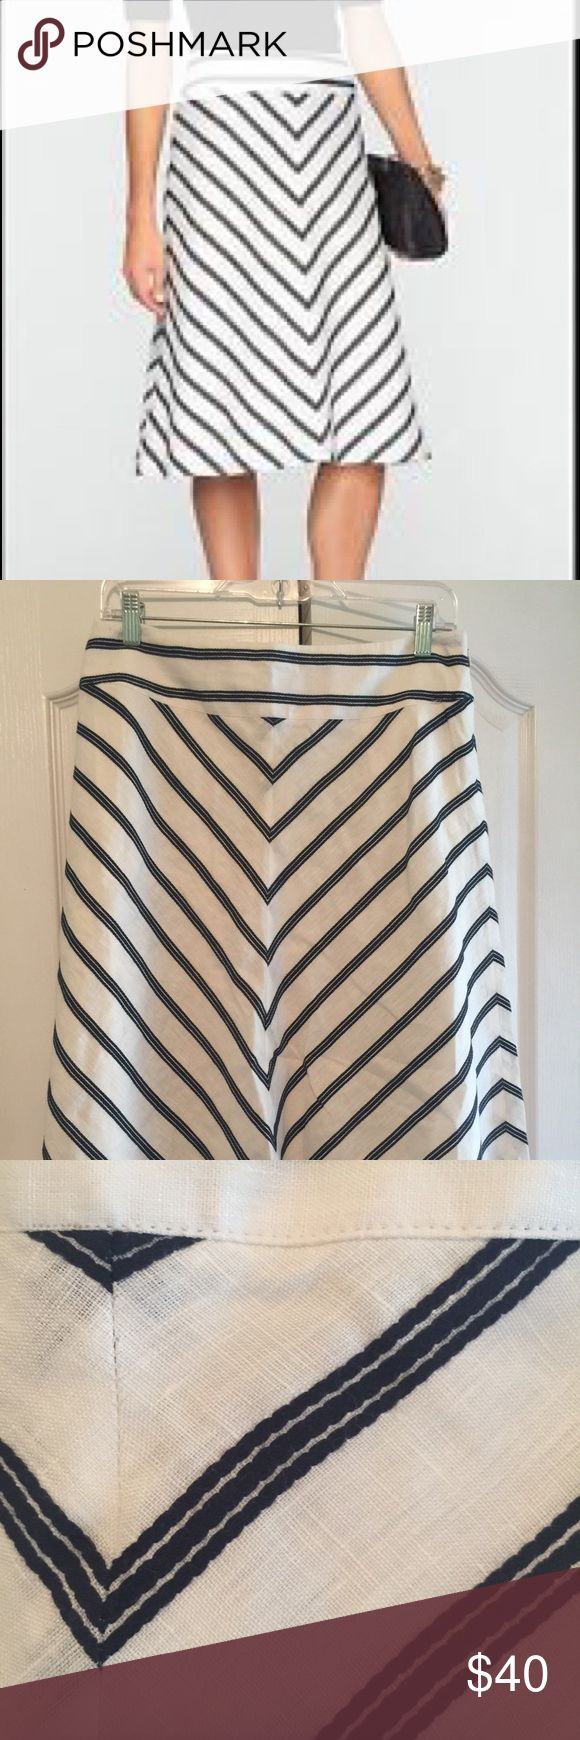 Talbots striped A-line skirt Classic A-line white with navy striped skirt. Flattering lines, classic style. Talbots Skirts Midi